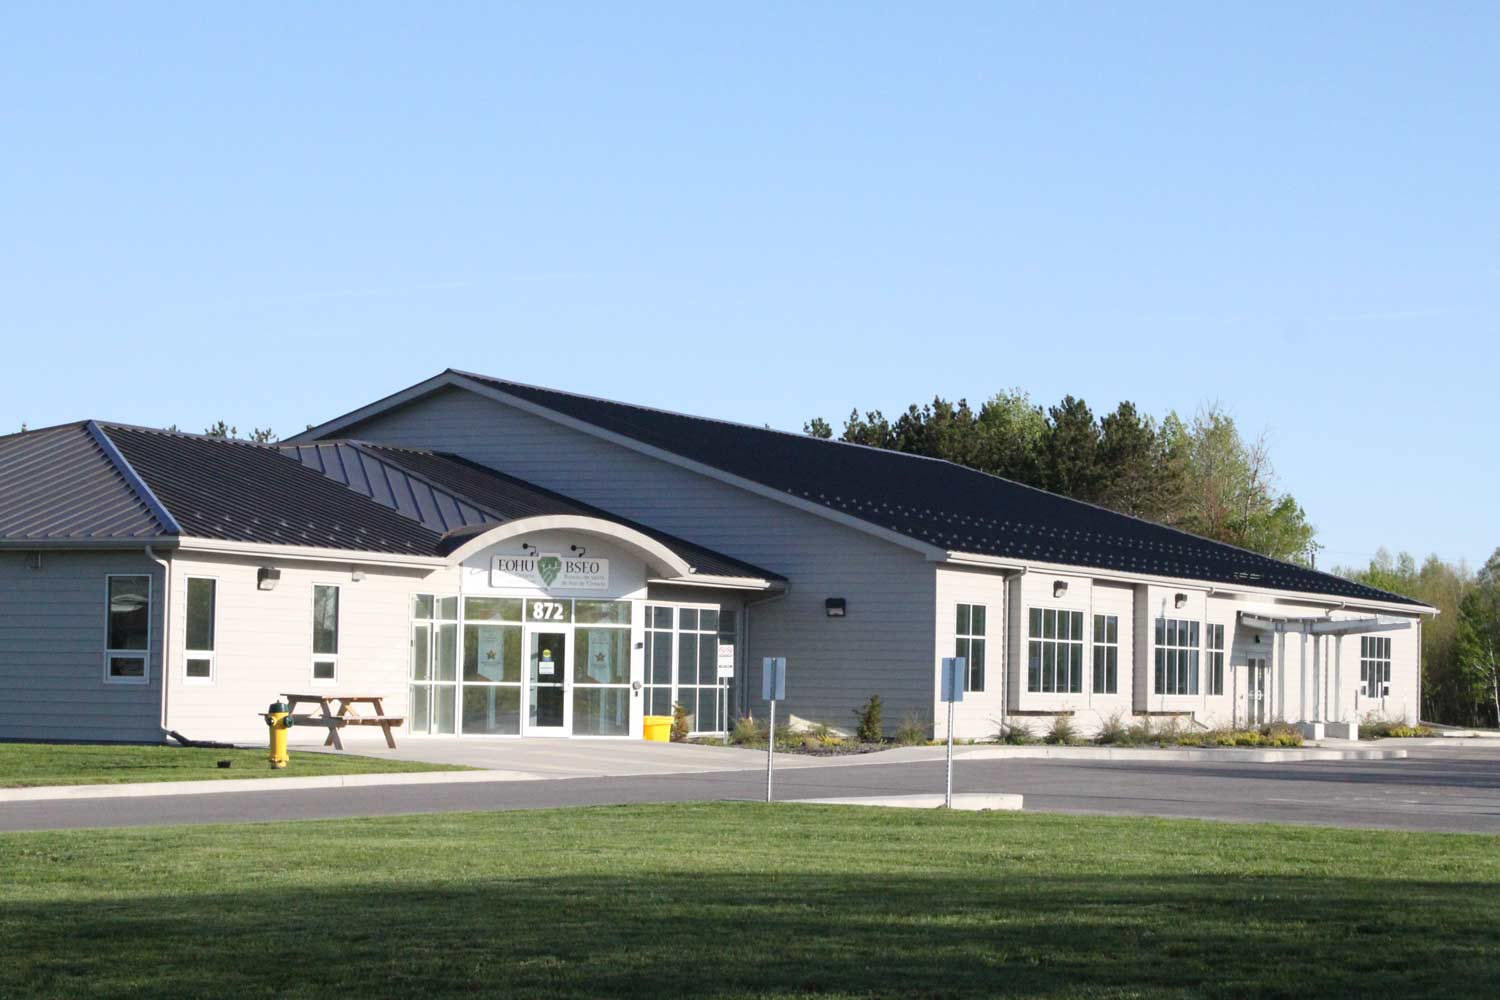 Eastern Ontario Health Unit Clinic